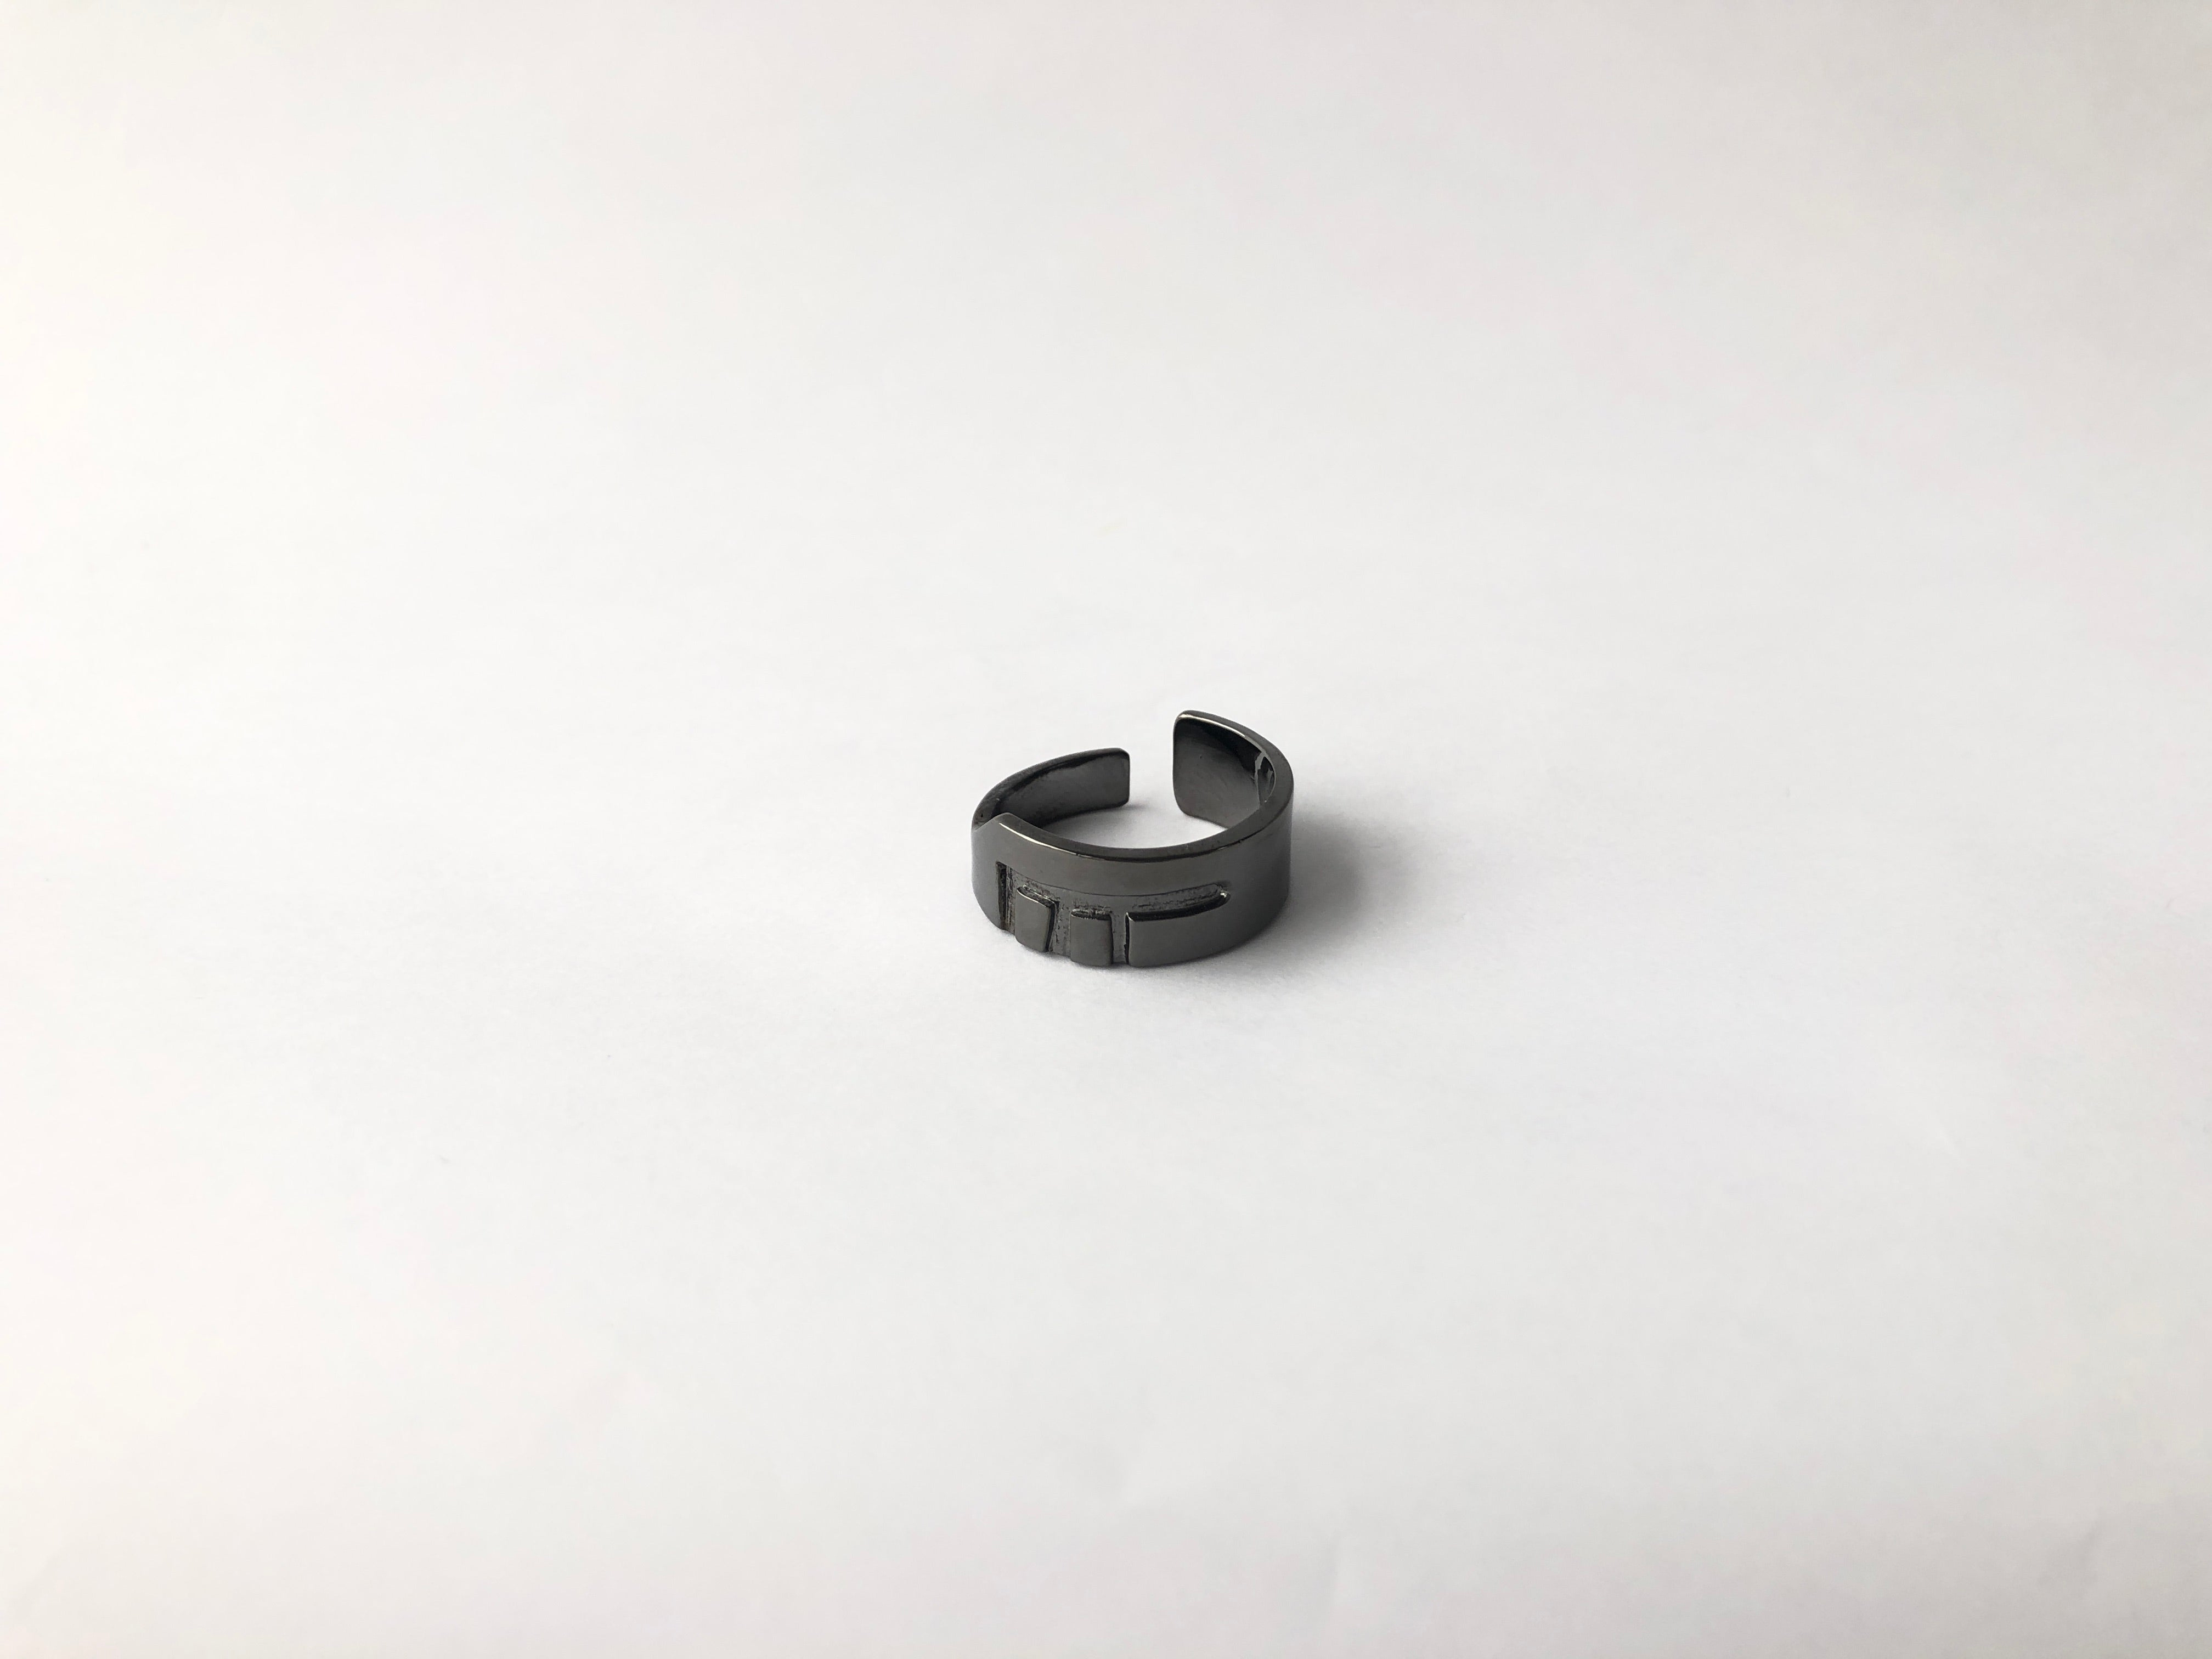 gunmetal classic sustainable ring jewelry recycled materials fair trade